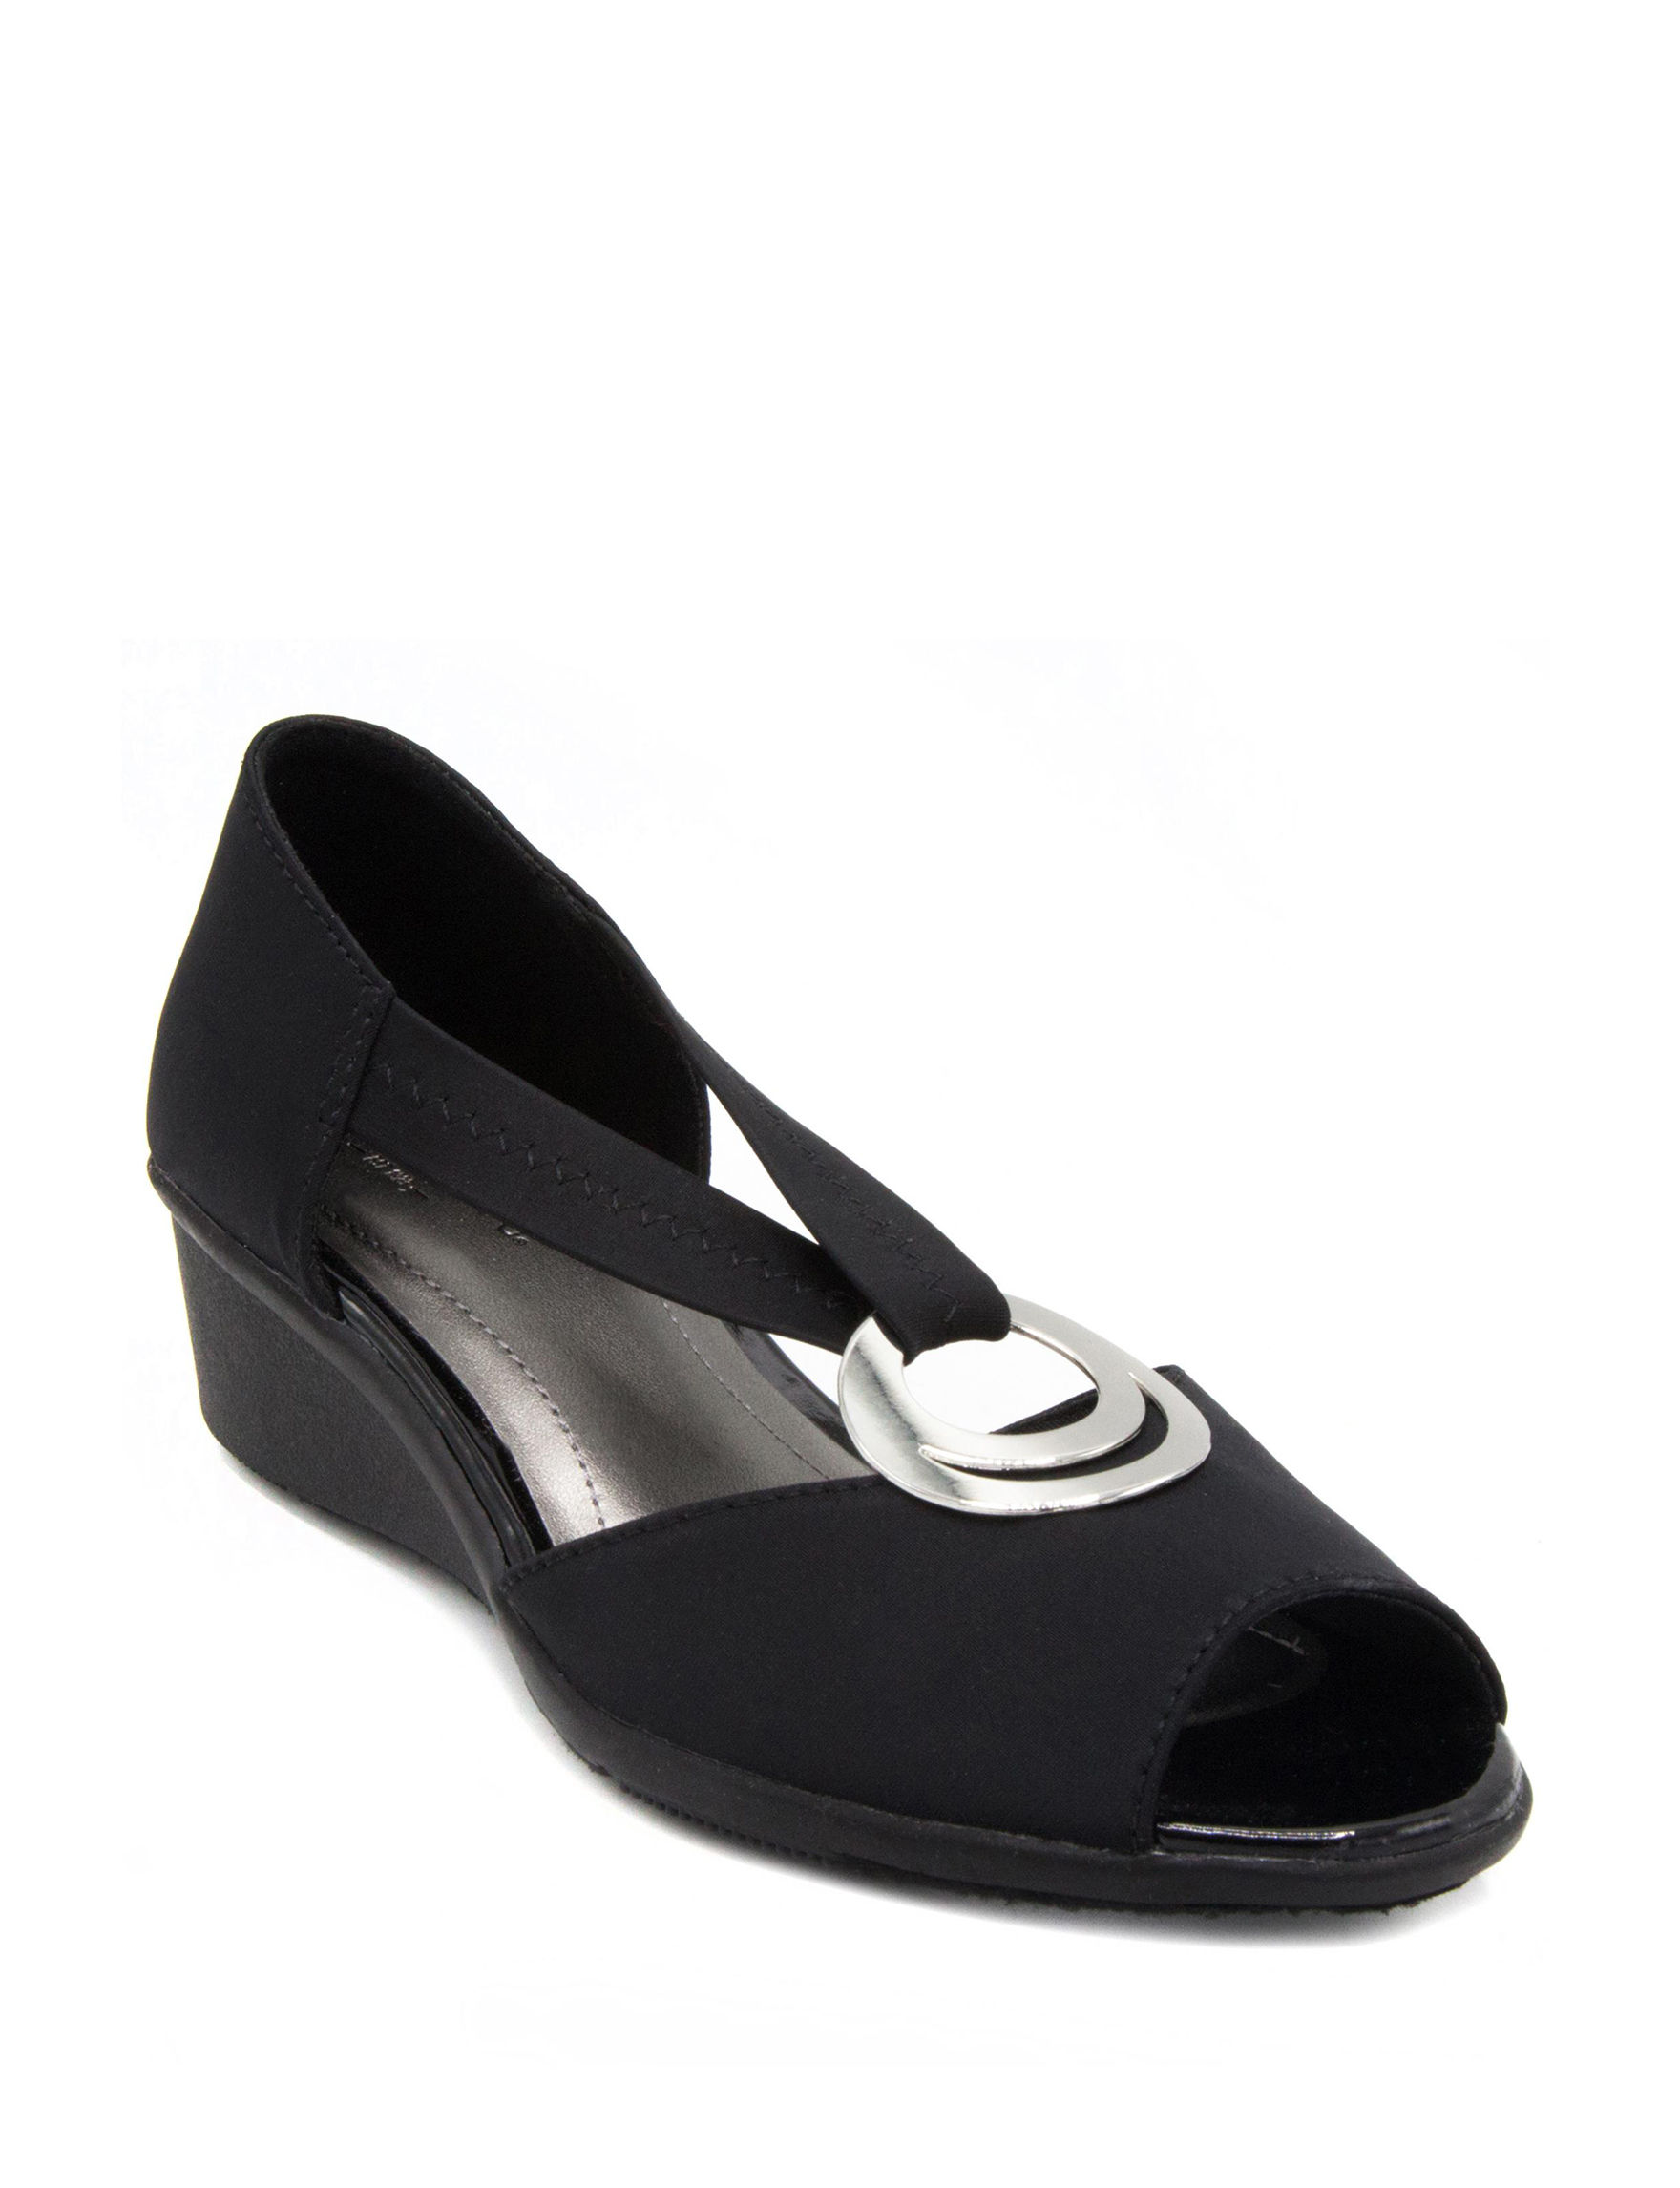 London Fog Black Wedge Sandals Comfort